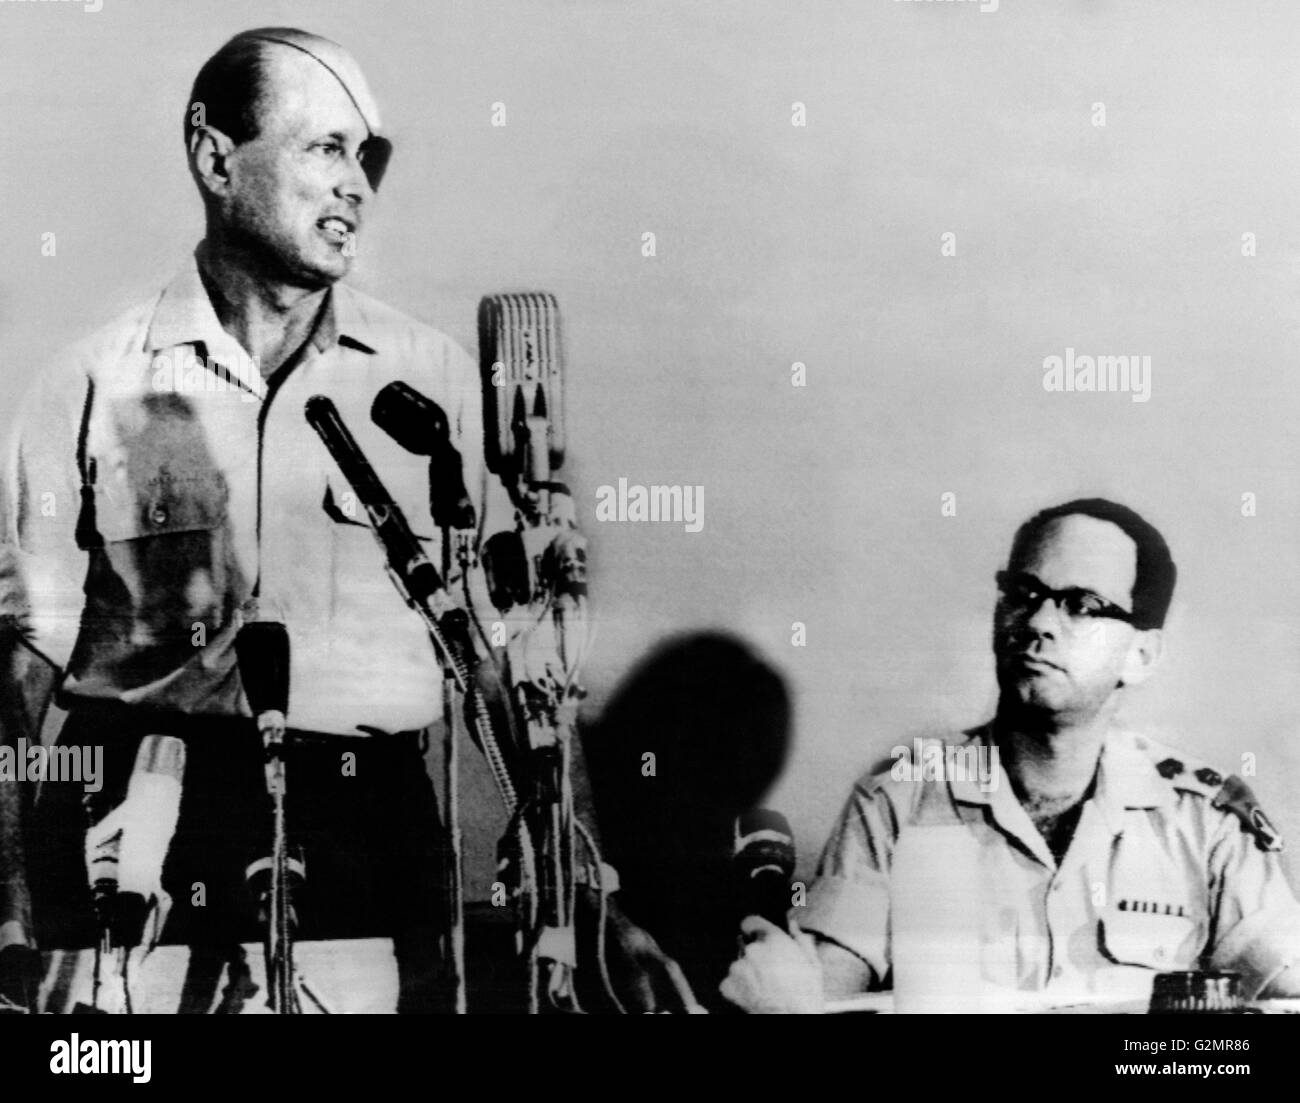 israel,tel aviv,General moshe dayan on the left,after a visit to Sinai,1967 - Stock Image